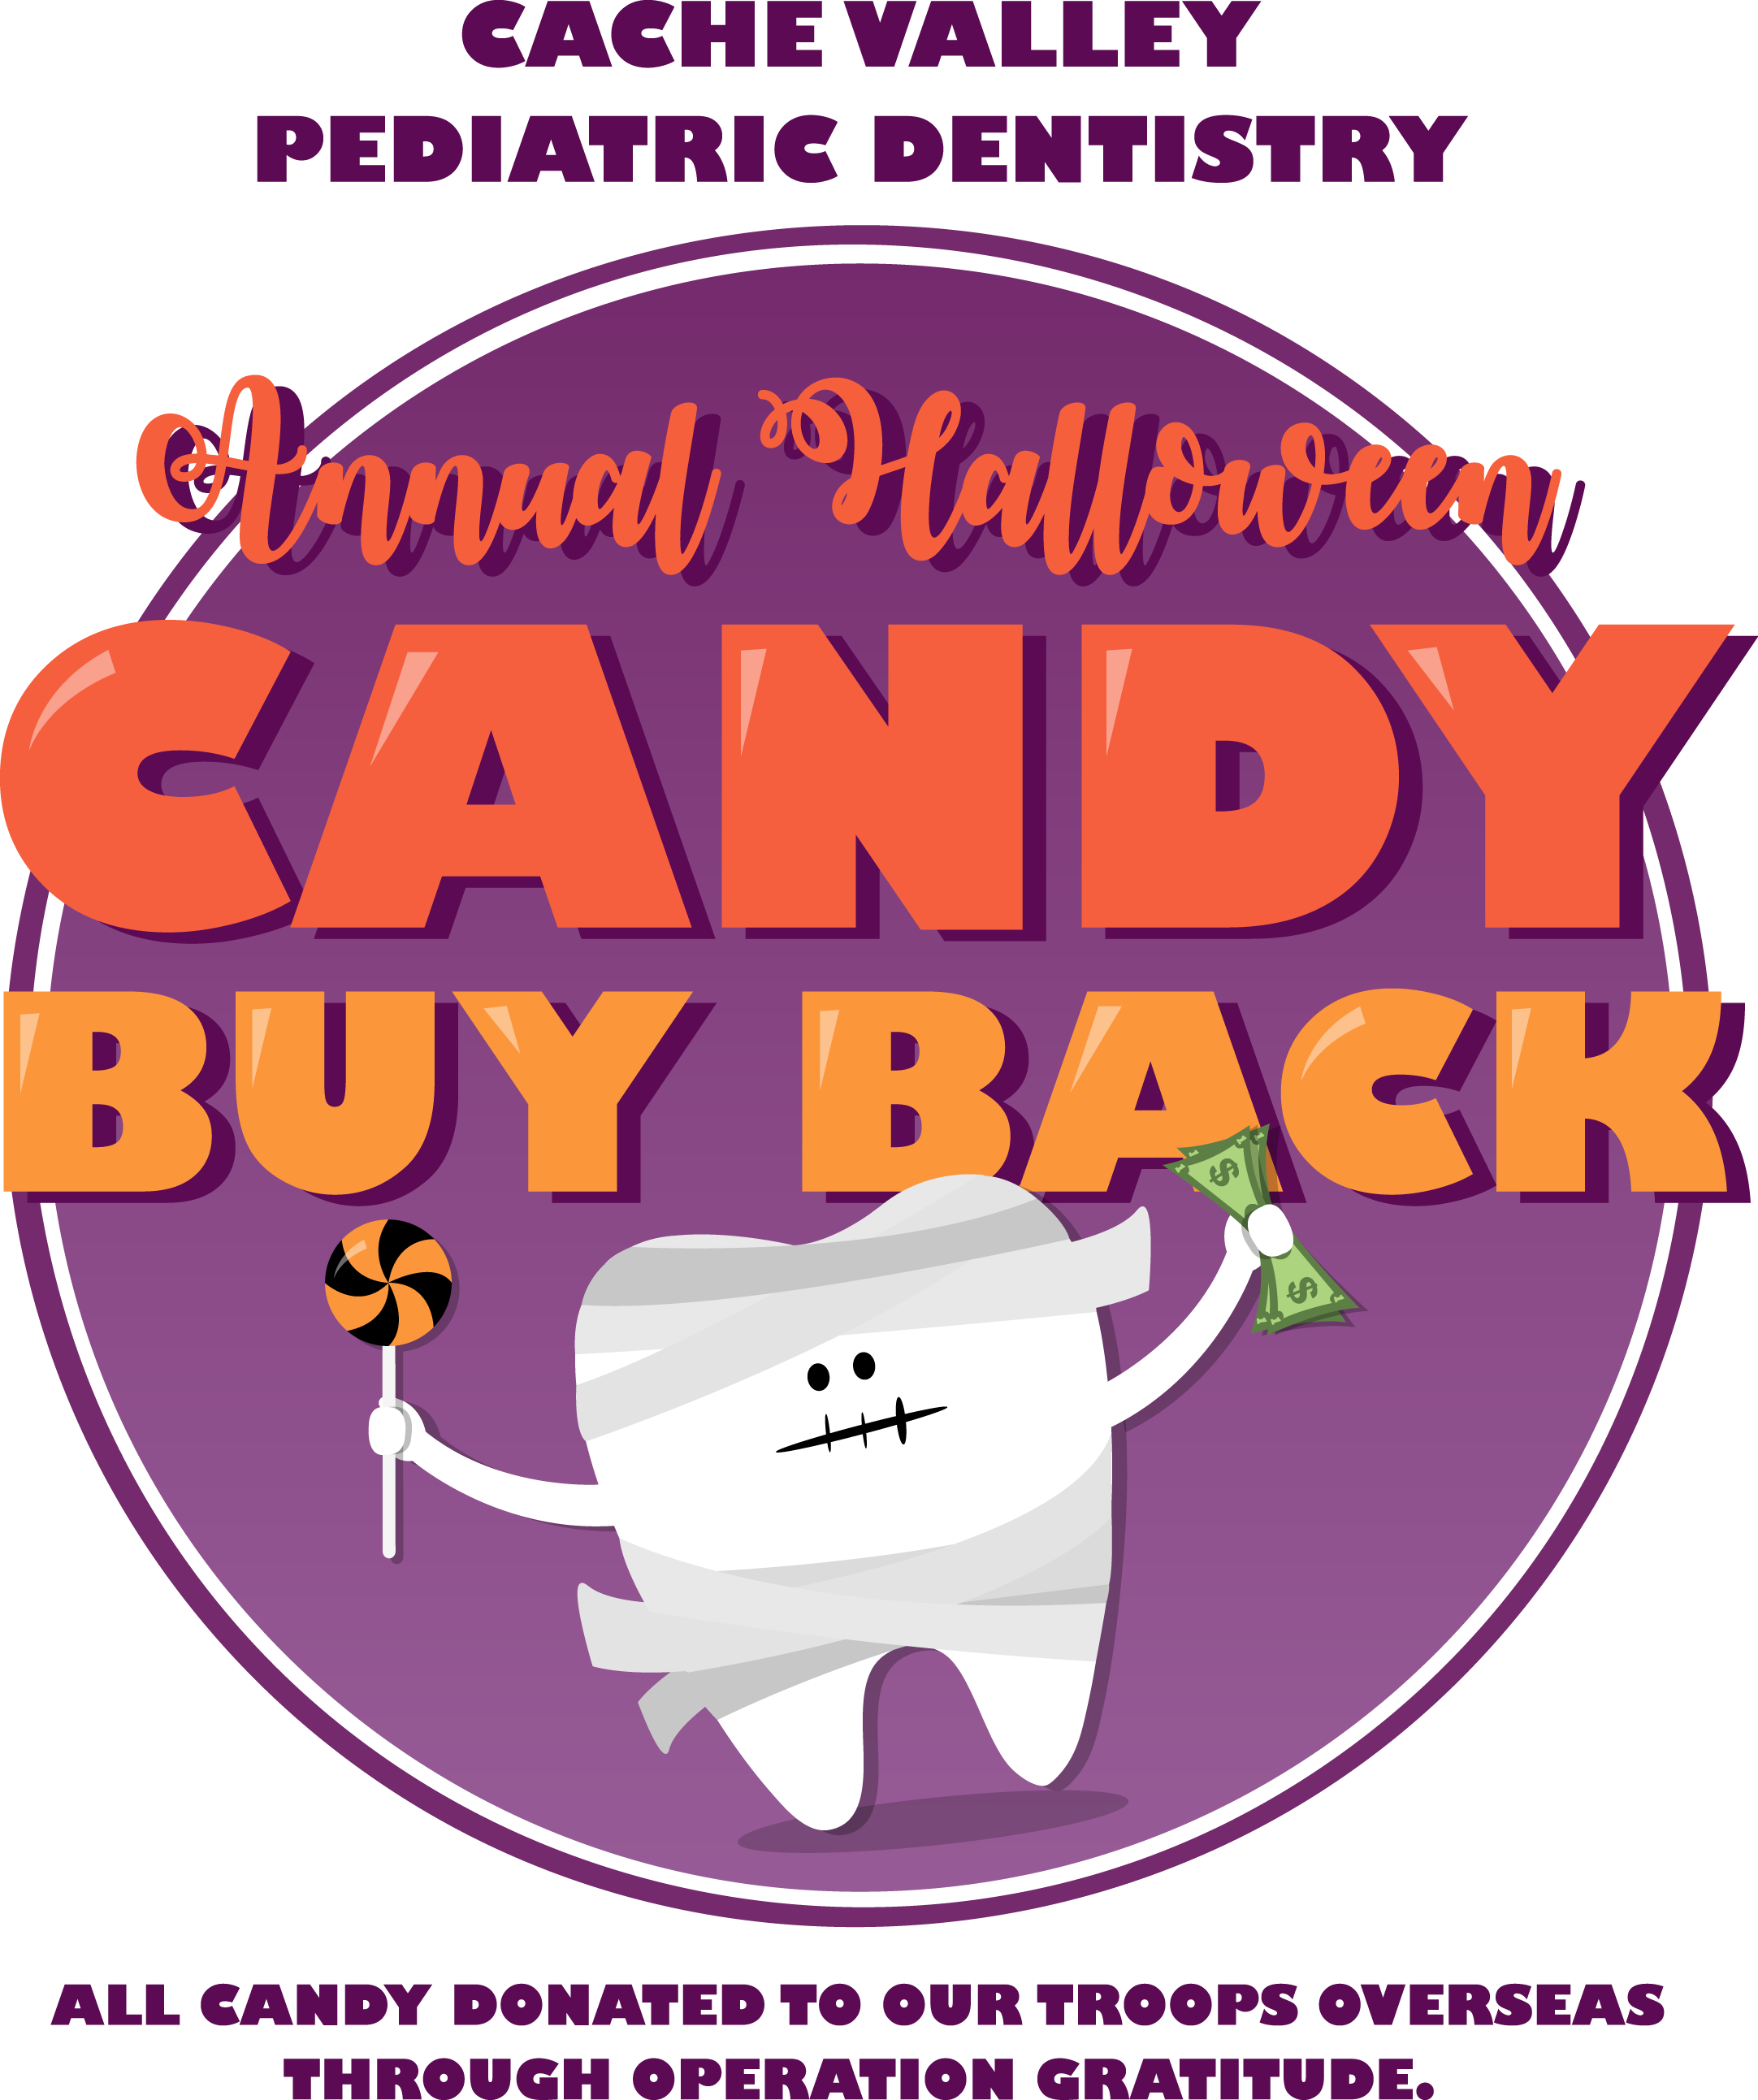 CVPD CANDY BUYBACK.png